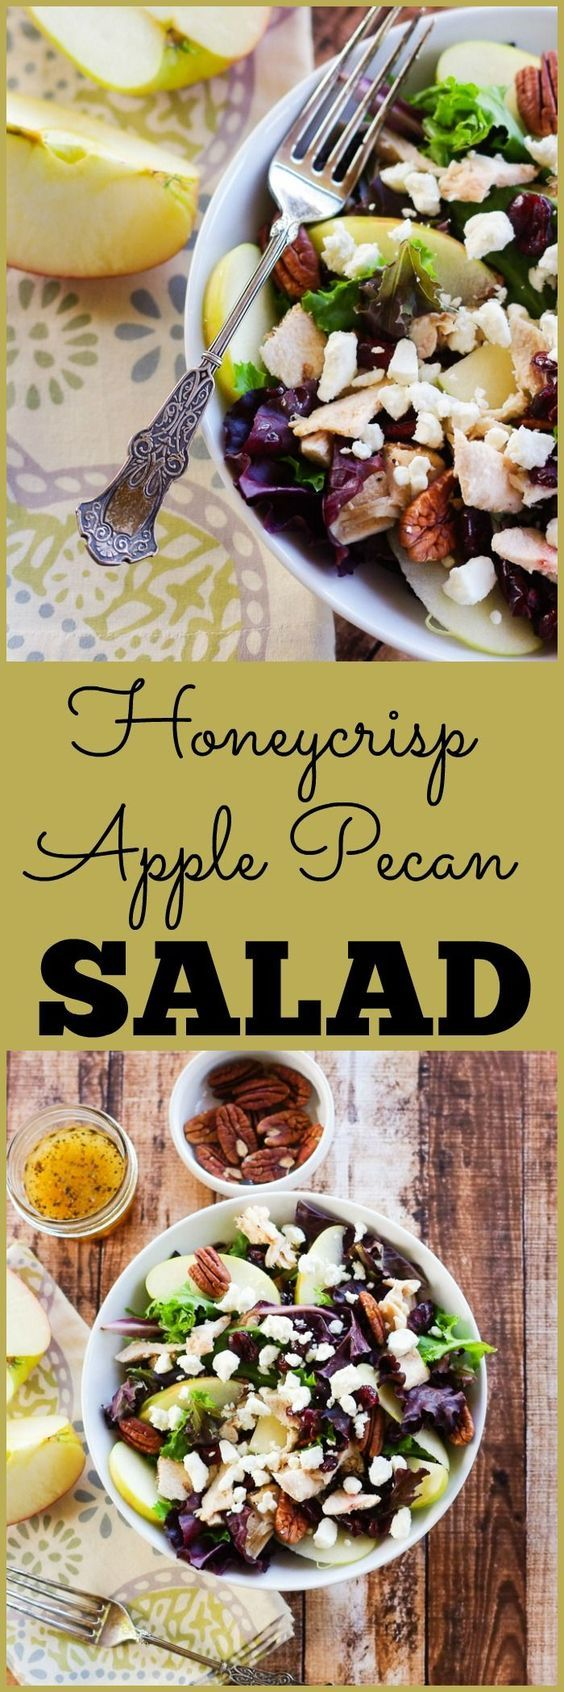 nice Honeycrisp Apple Pecan Salad with an Apple Cider Vinaigrette